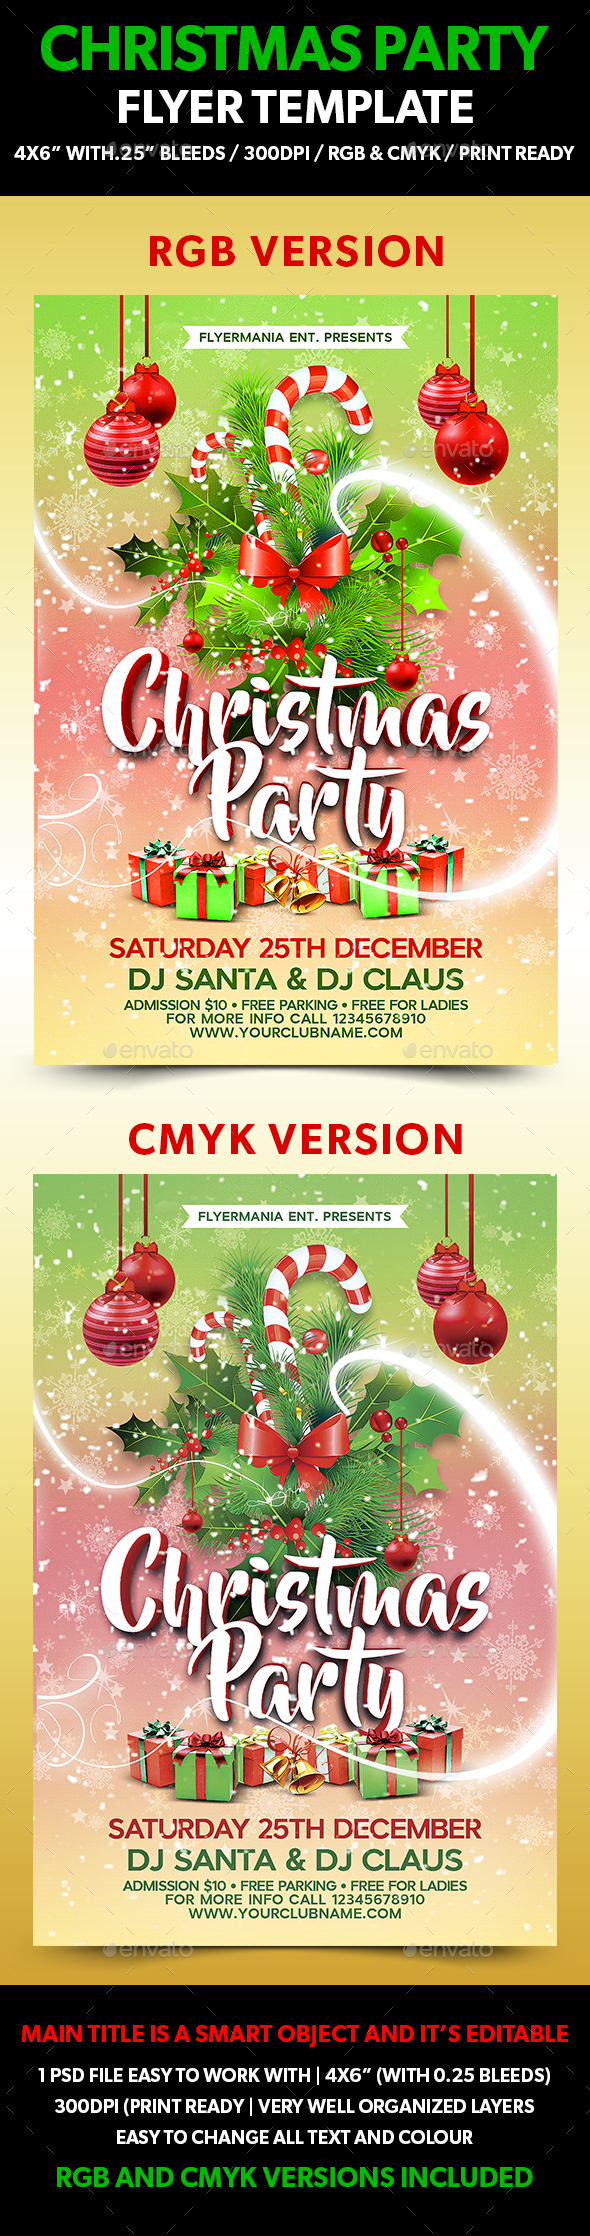 Christmas Party Flyer Template - Flyers Print Templates